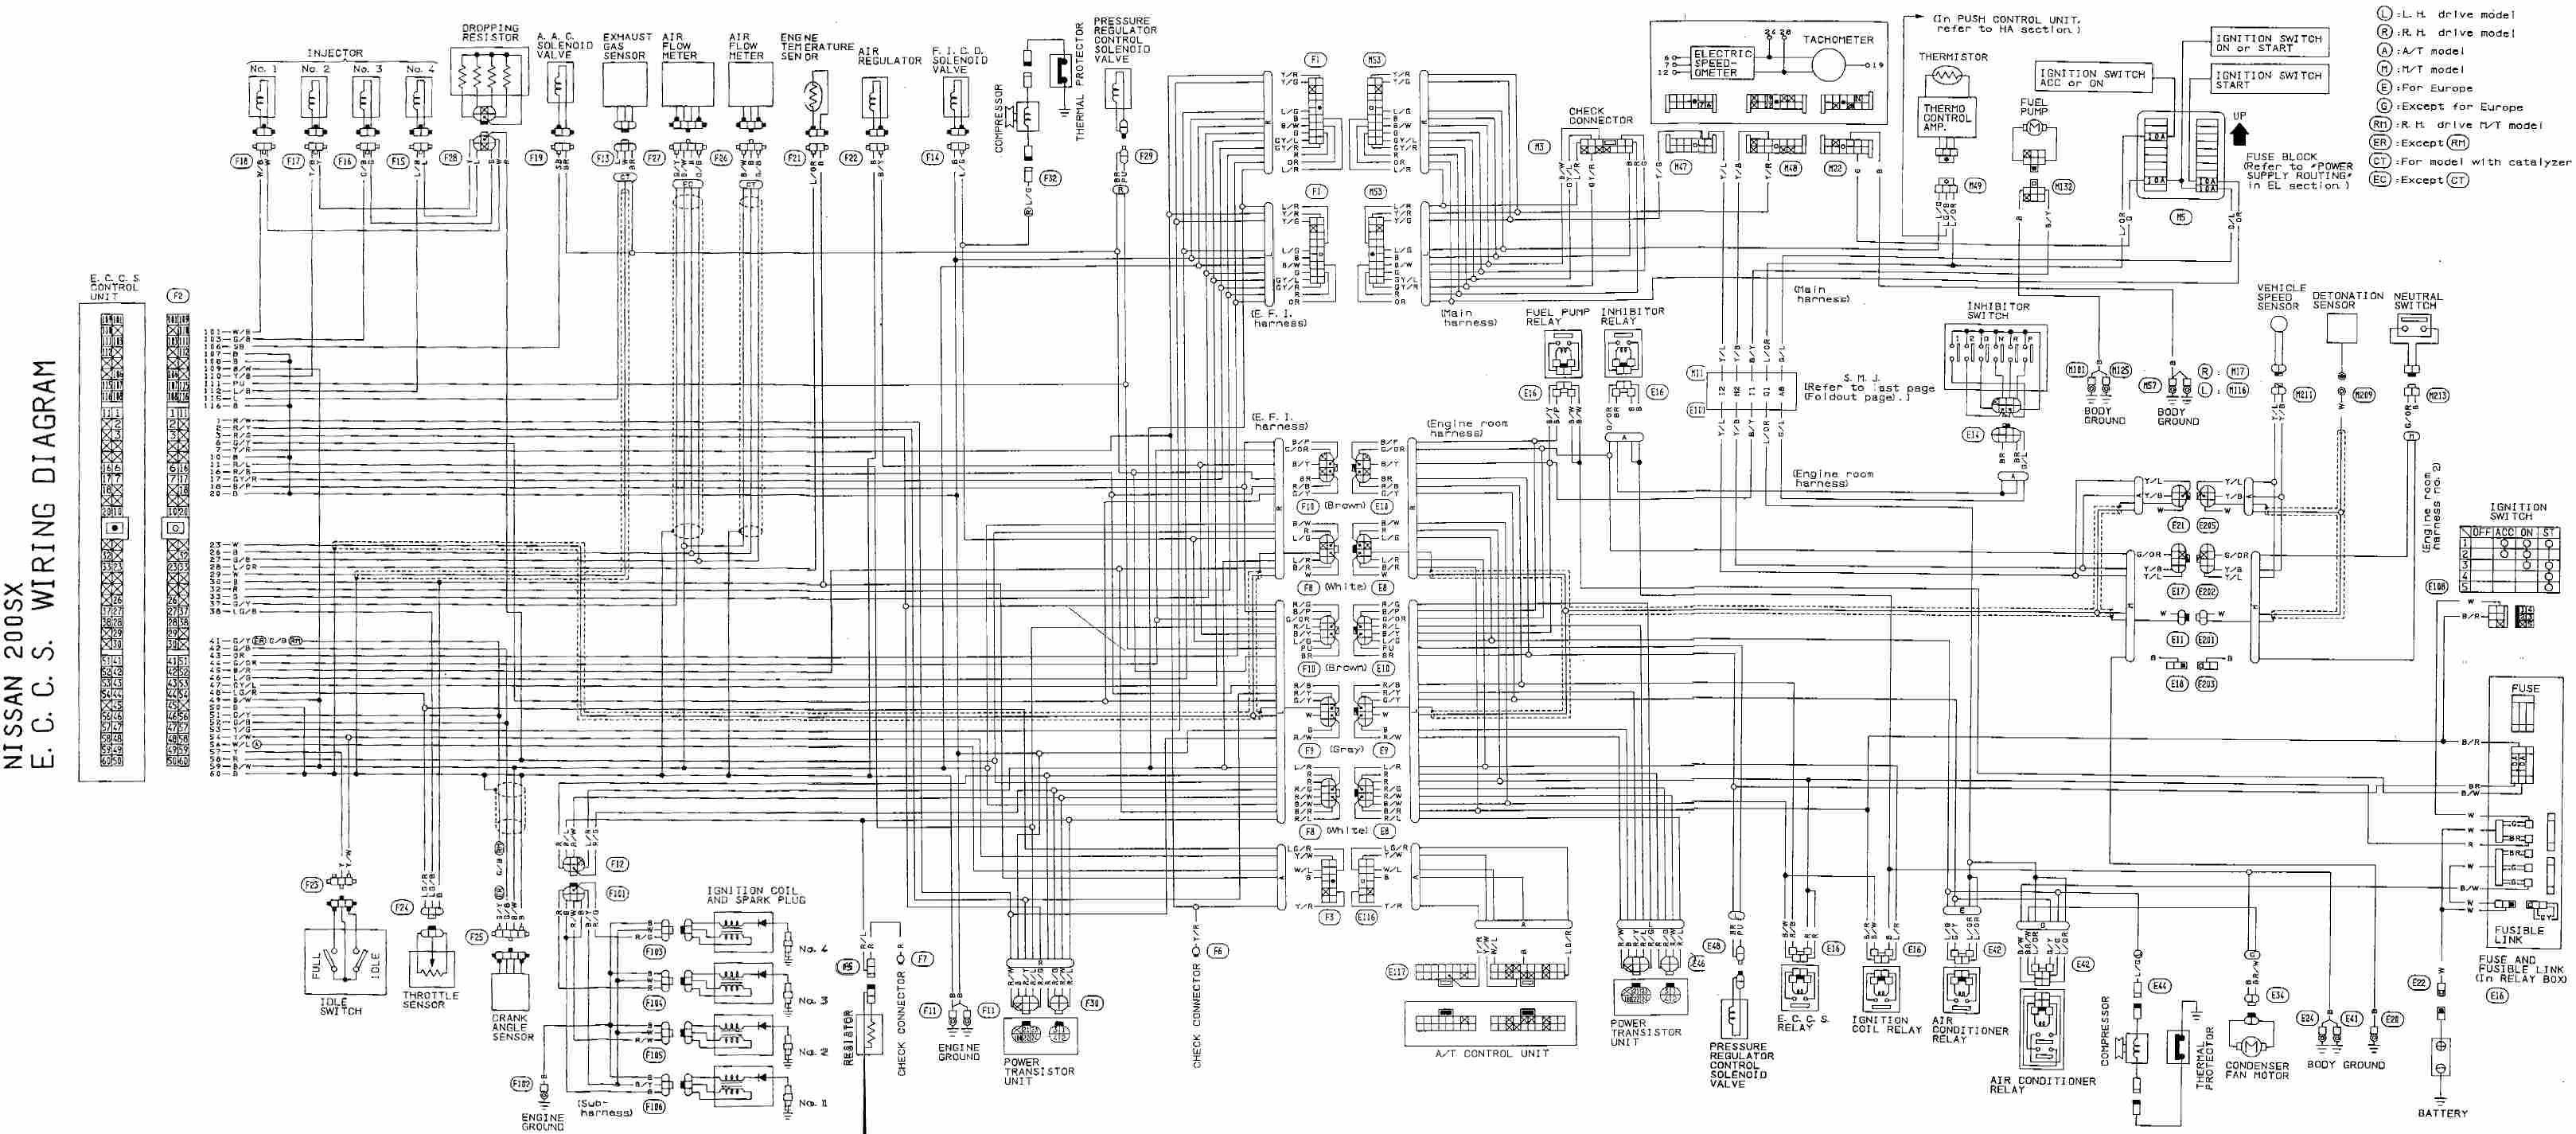 medium resolution of nissan wiring diagram wiring diagrams box atlas wiring diagram nissan wiring diagram